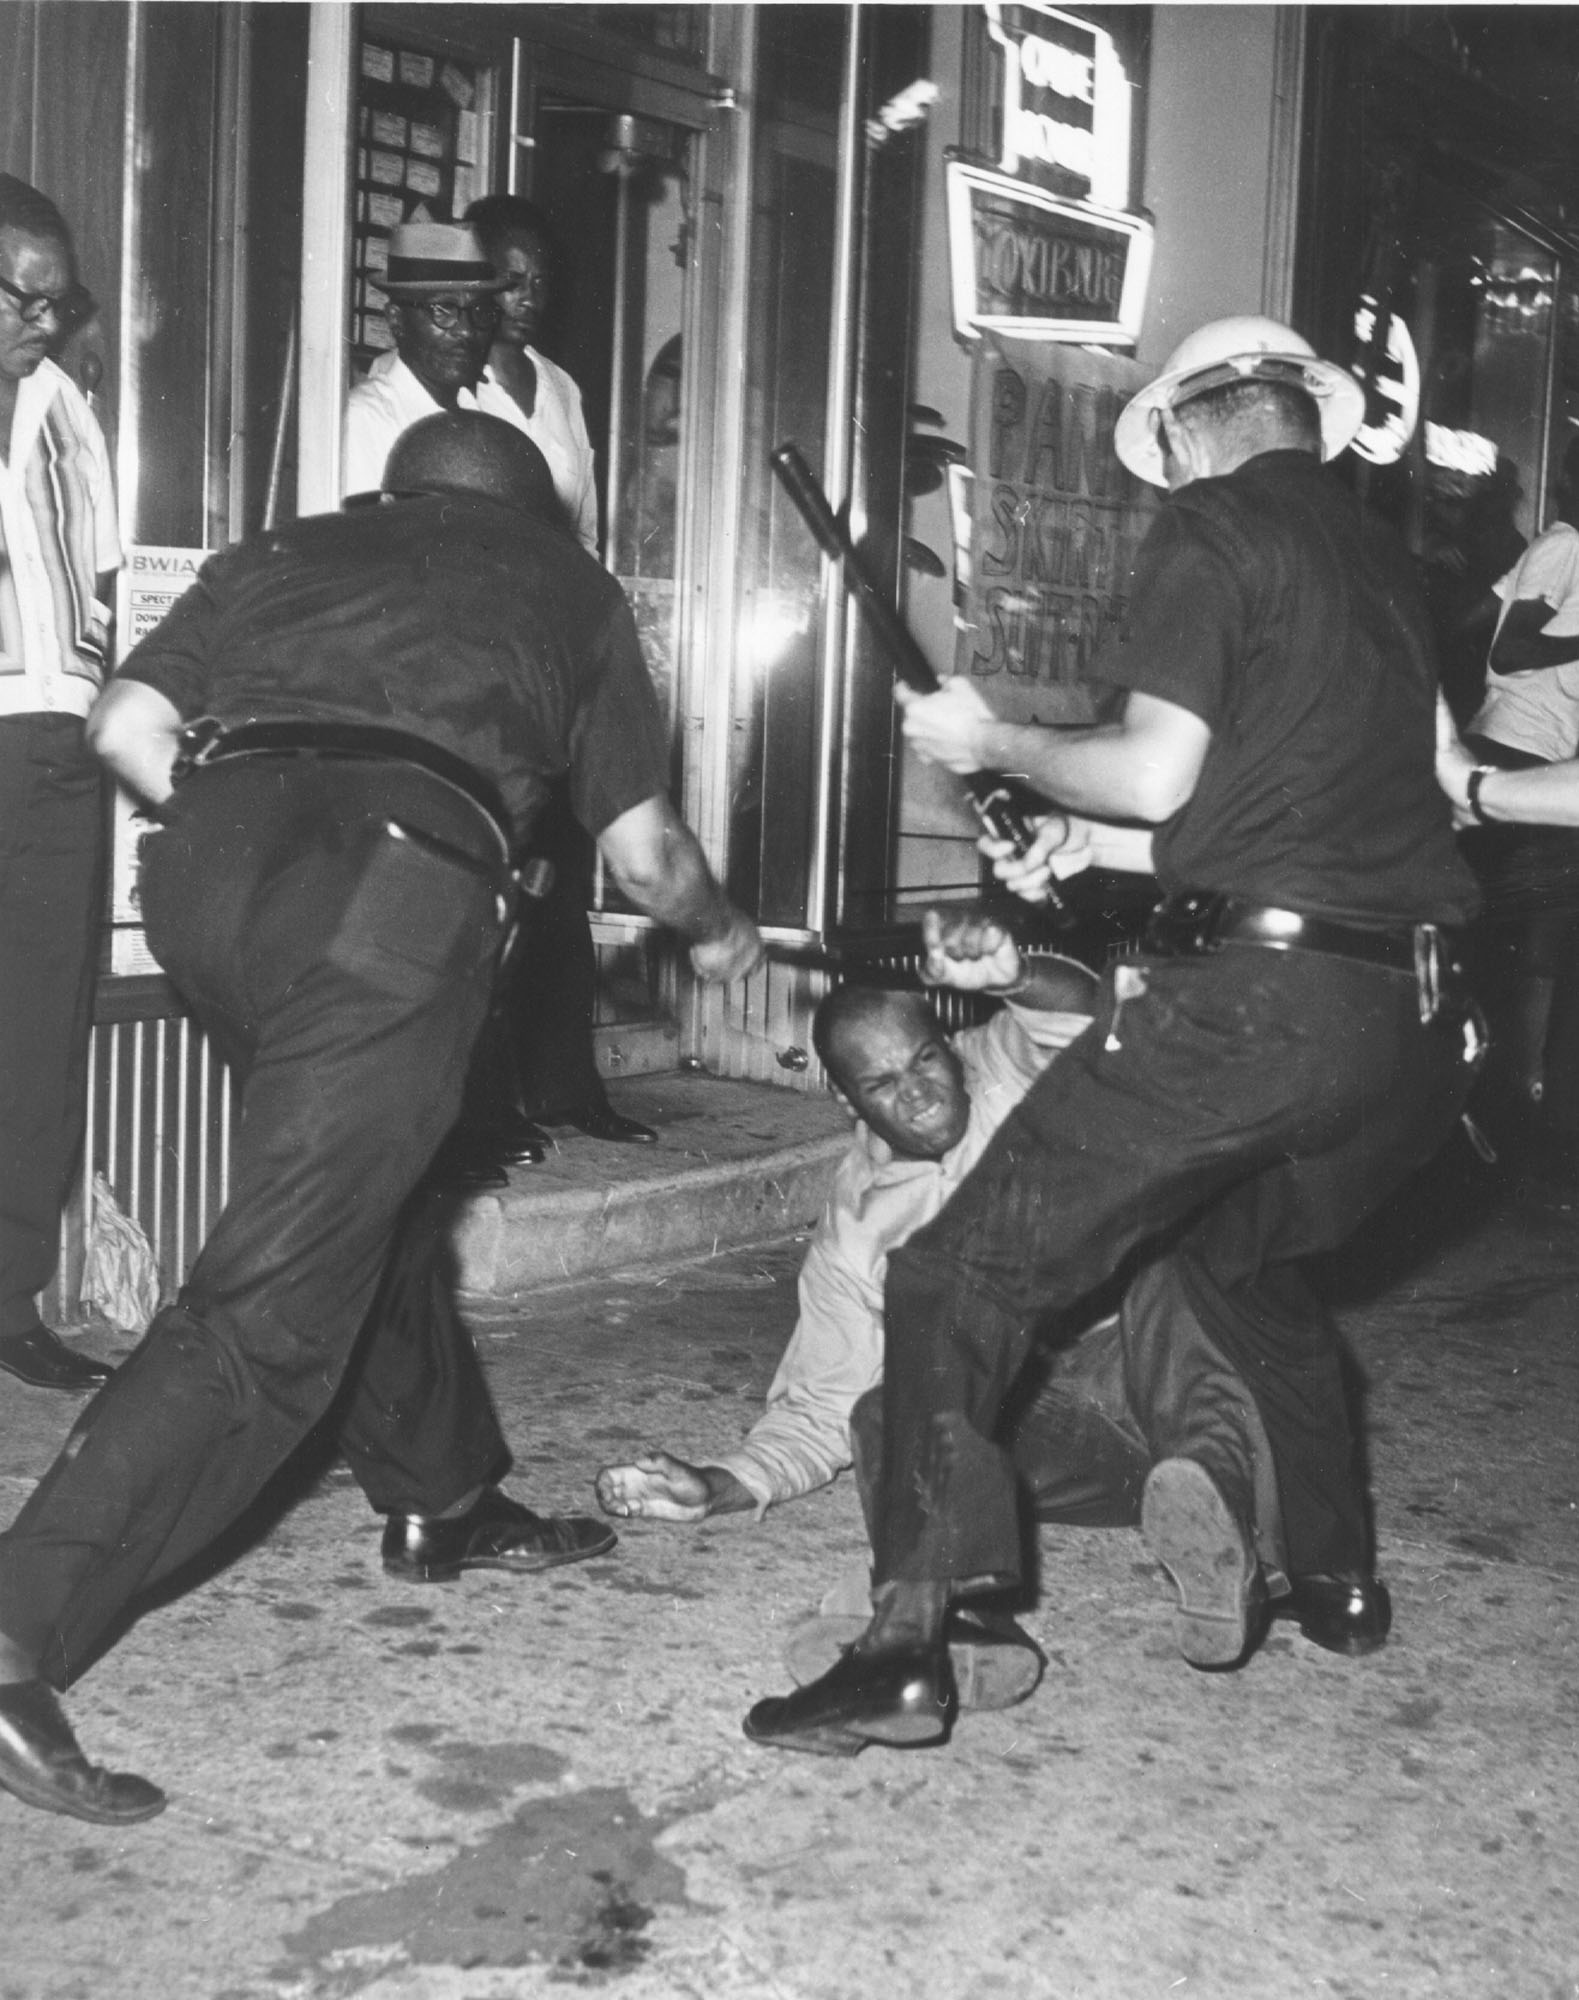 Riots Erupted In New Yorks Harlem Neighborhood In July 1974 After A White Police Officer Sa Blackager Ap